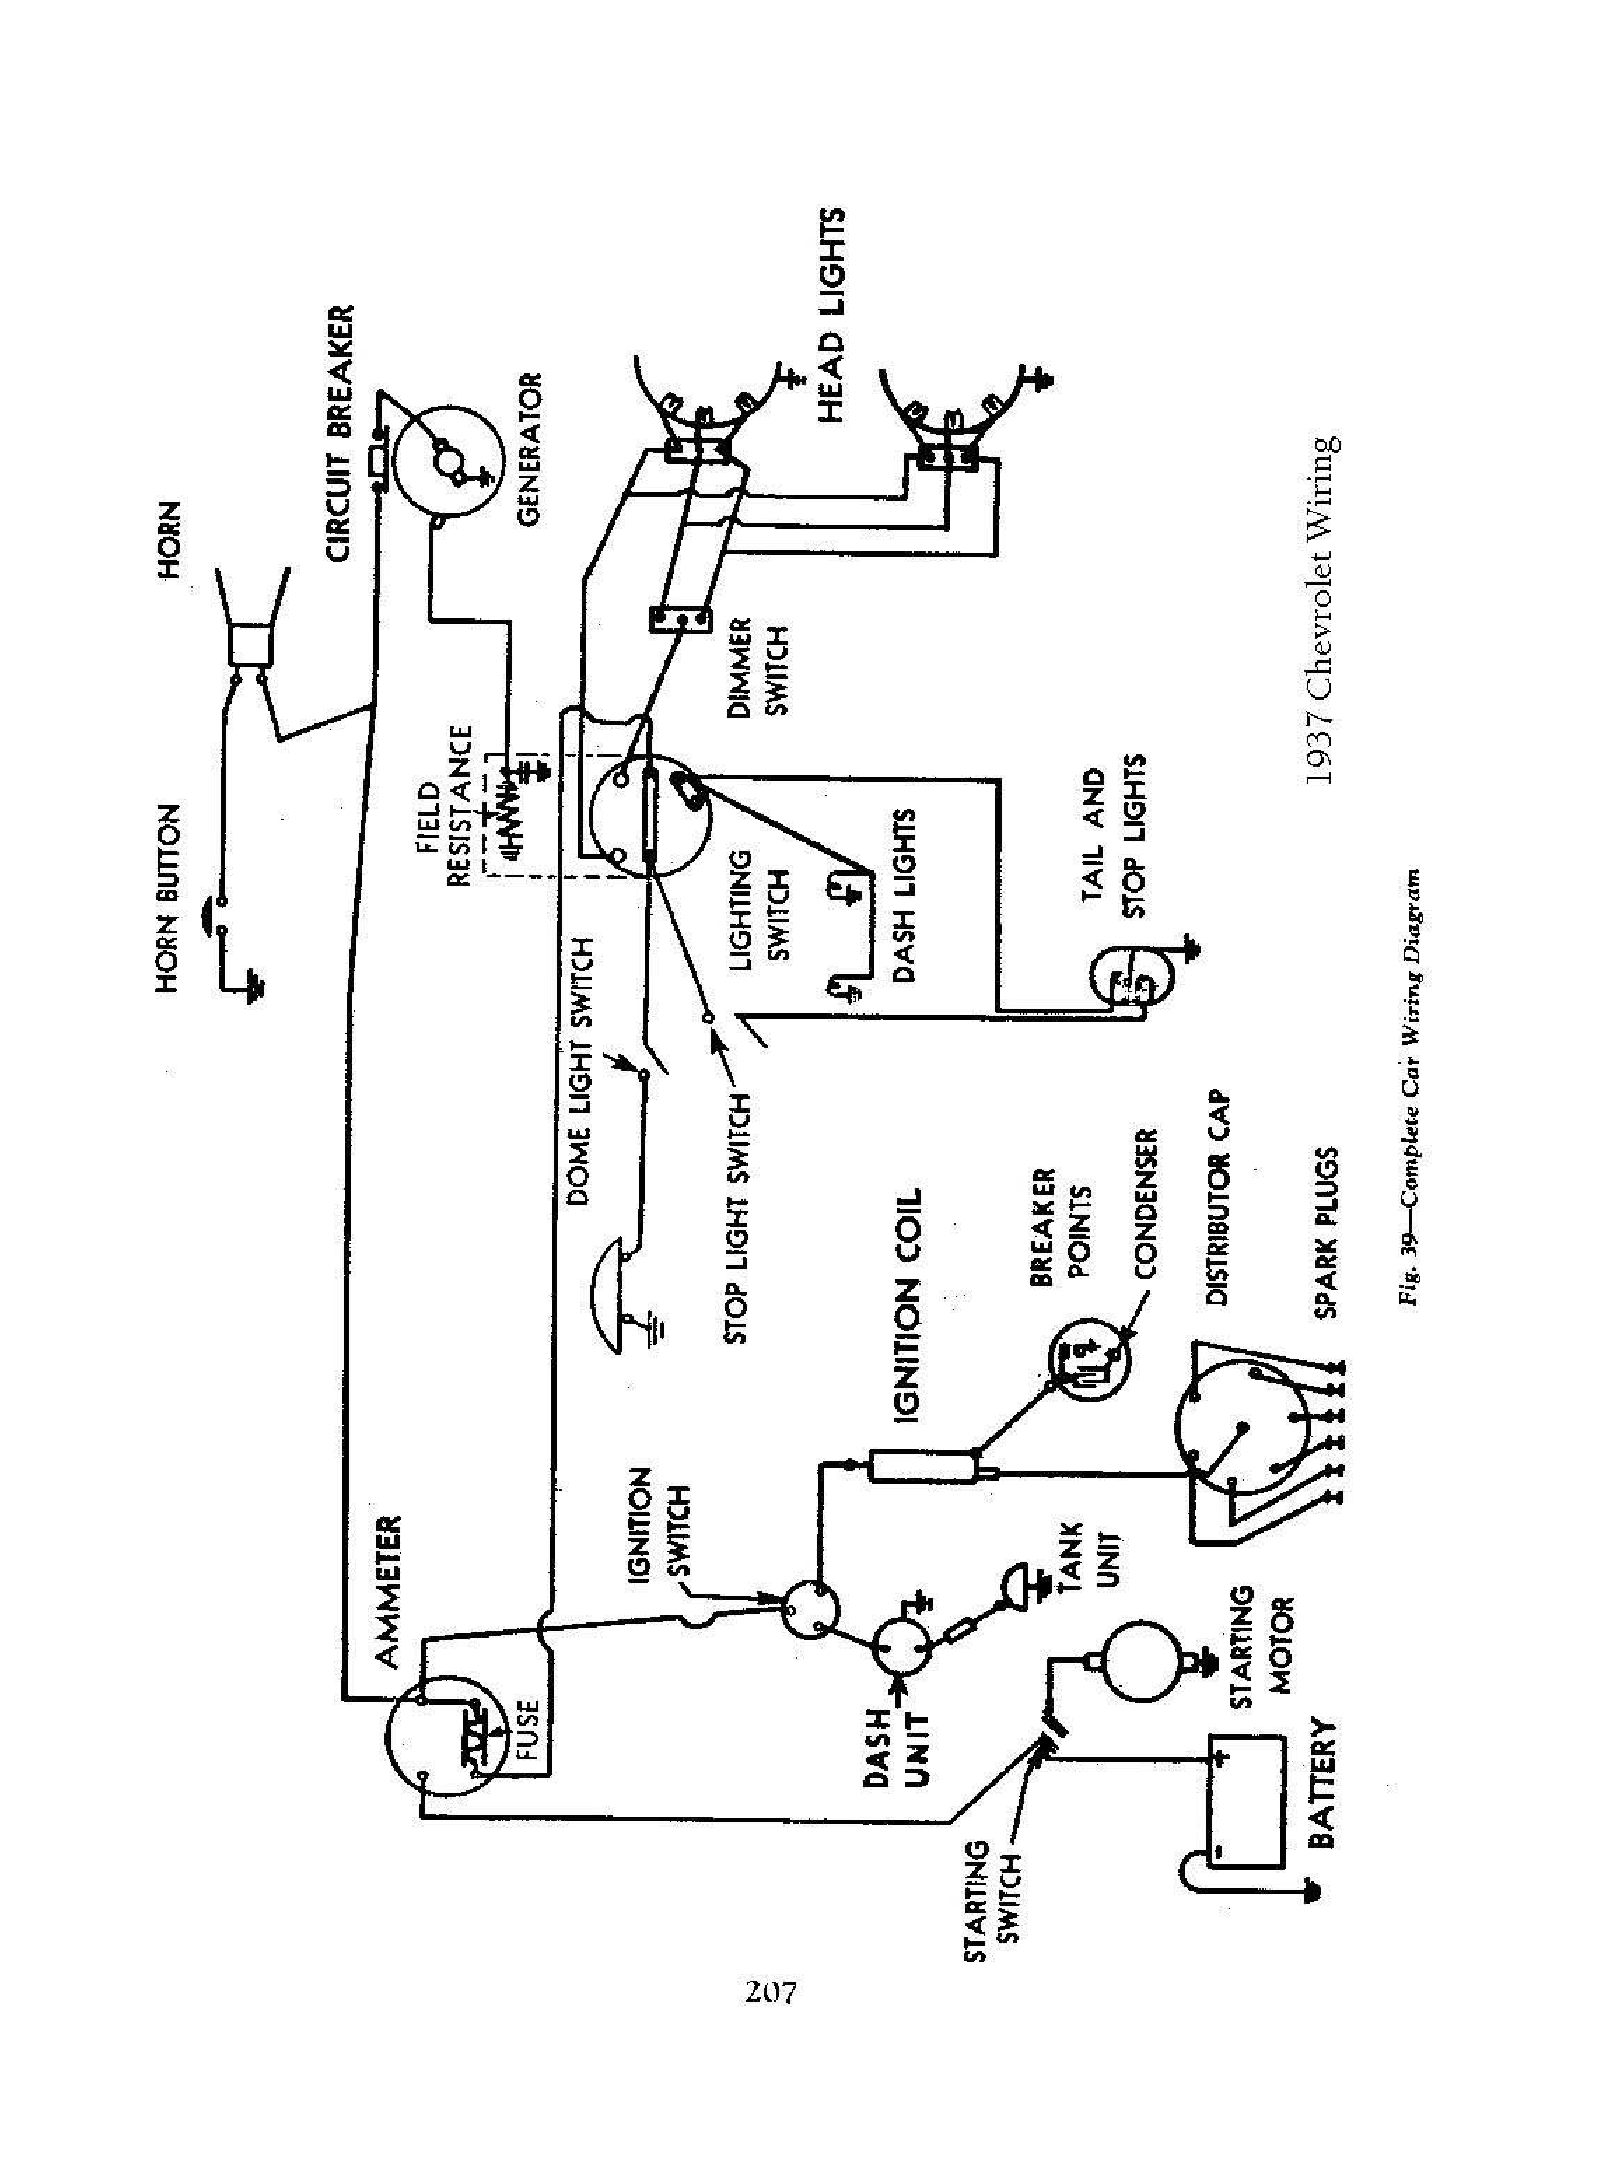 1947 chevy wiring diagram